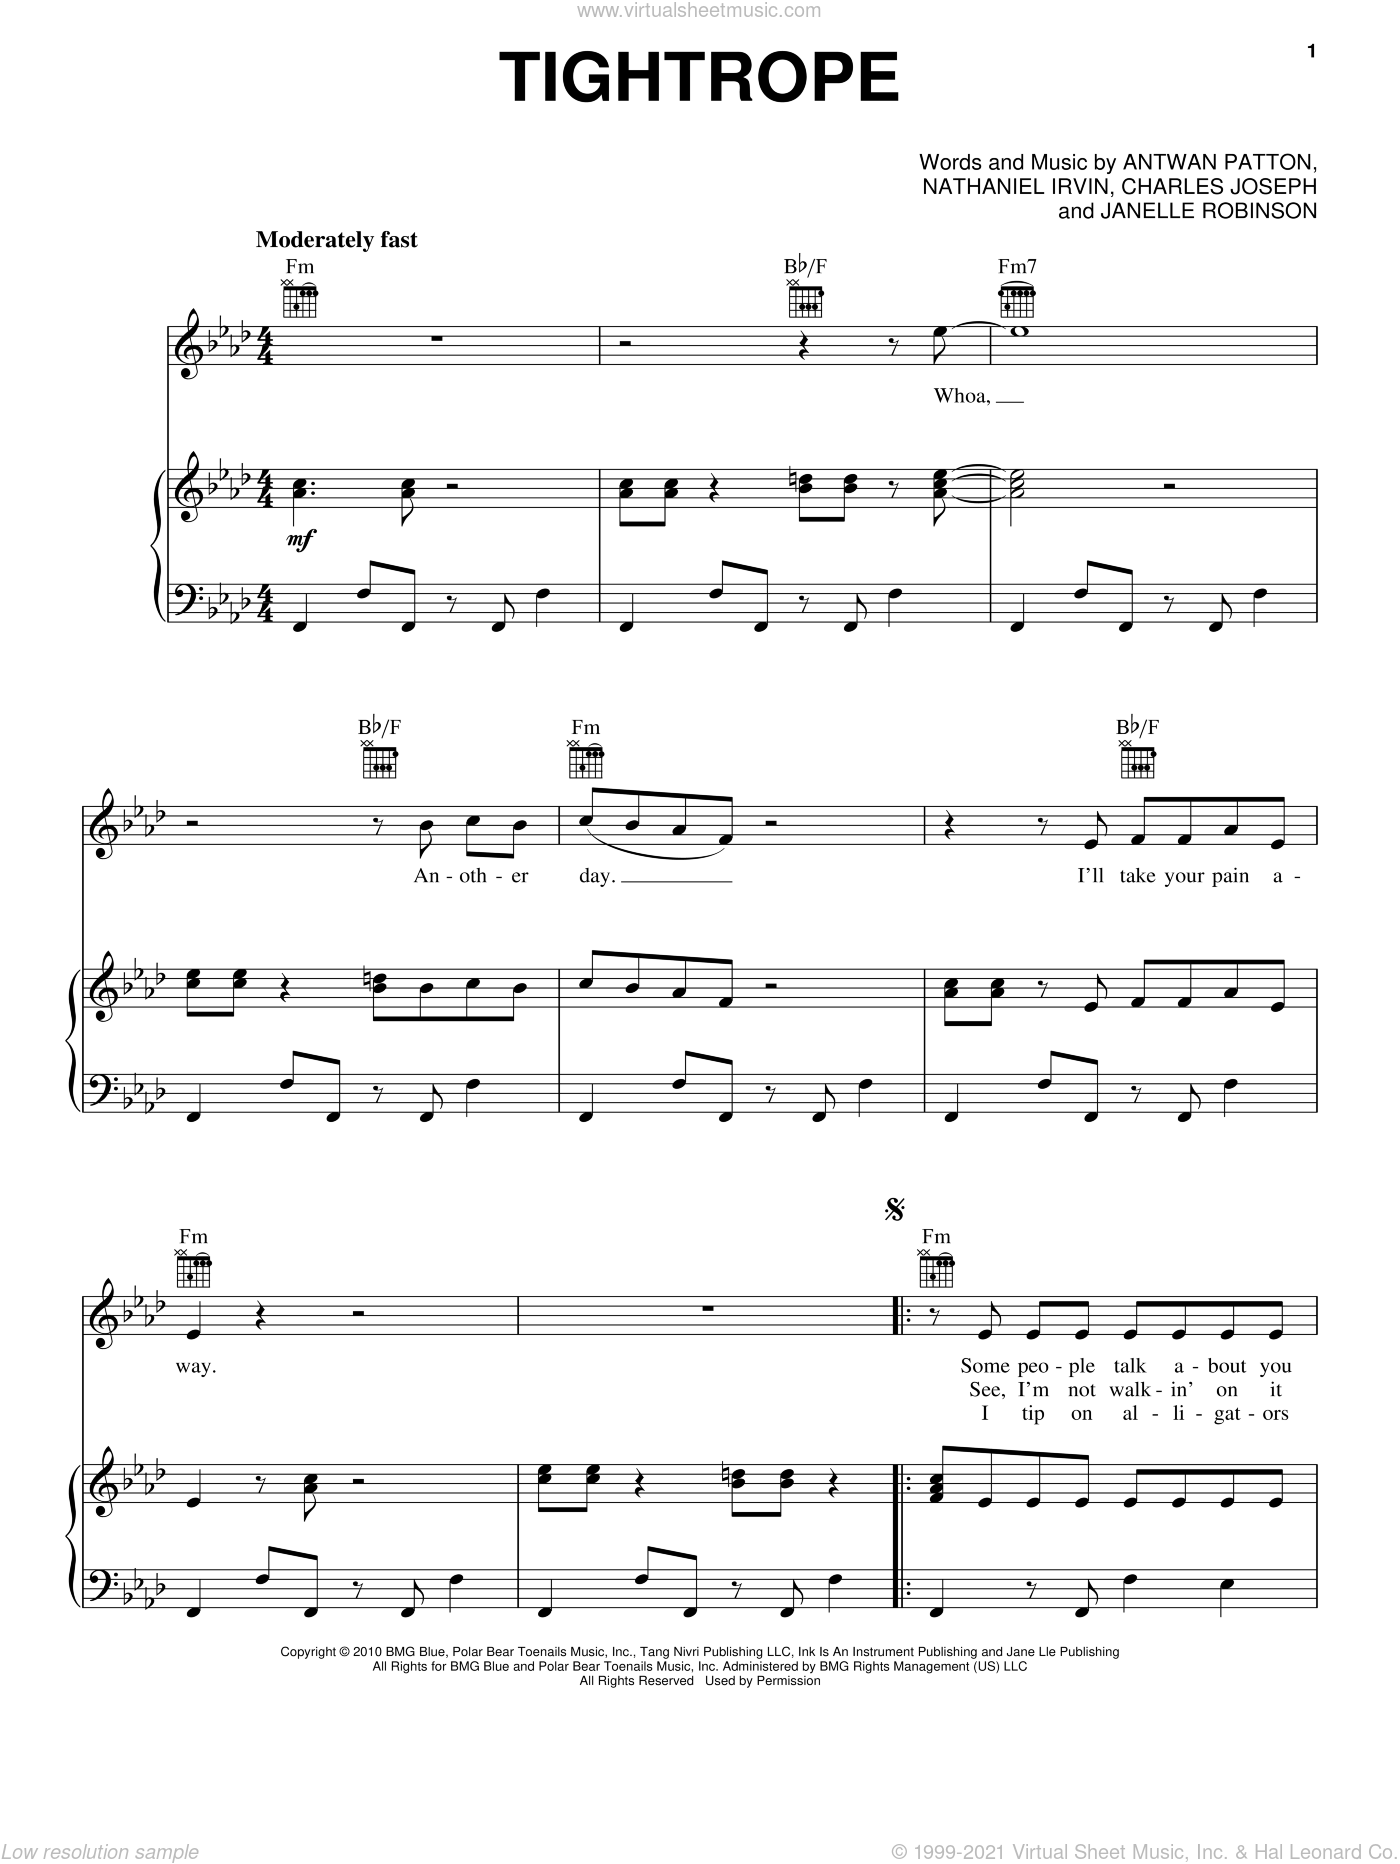 Tightrope sheet music for voice, piano or guitar by Janelle Monae, Janelle  Monae, Janelle Monáe, Antwan Patton, Charles Joseph, Janelle Robinson and Nathaniel Irvin, intermediate skill level